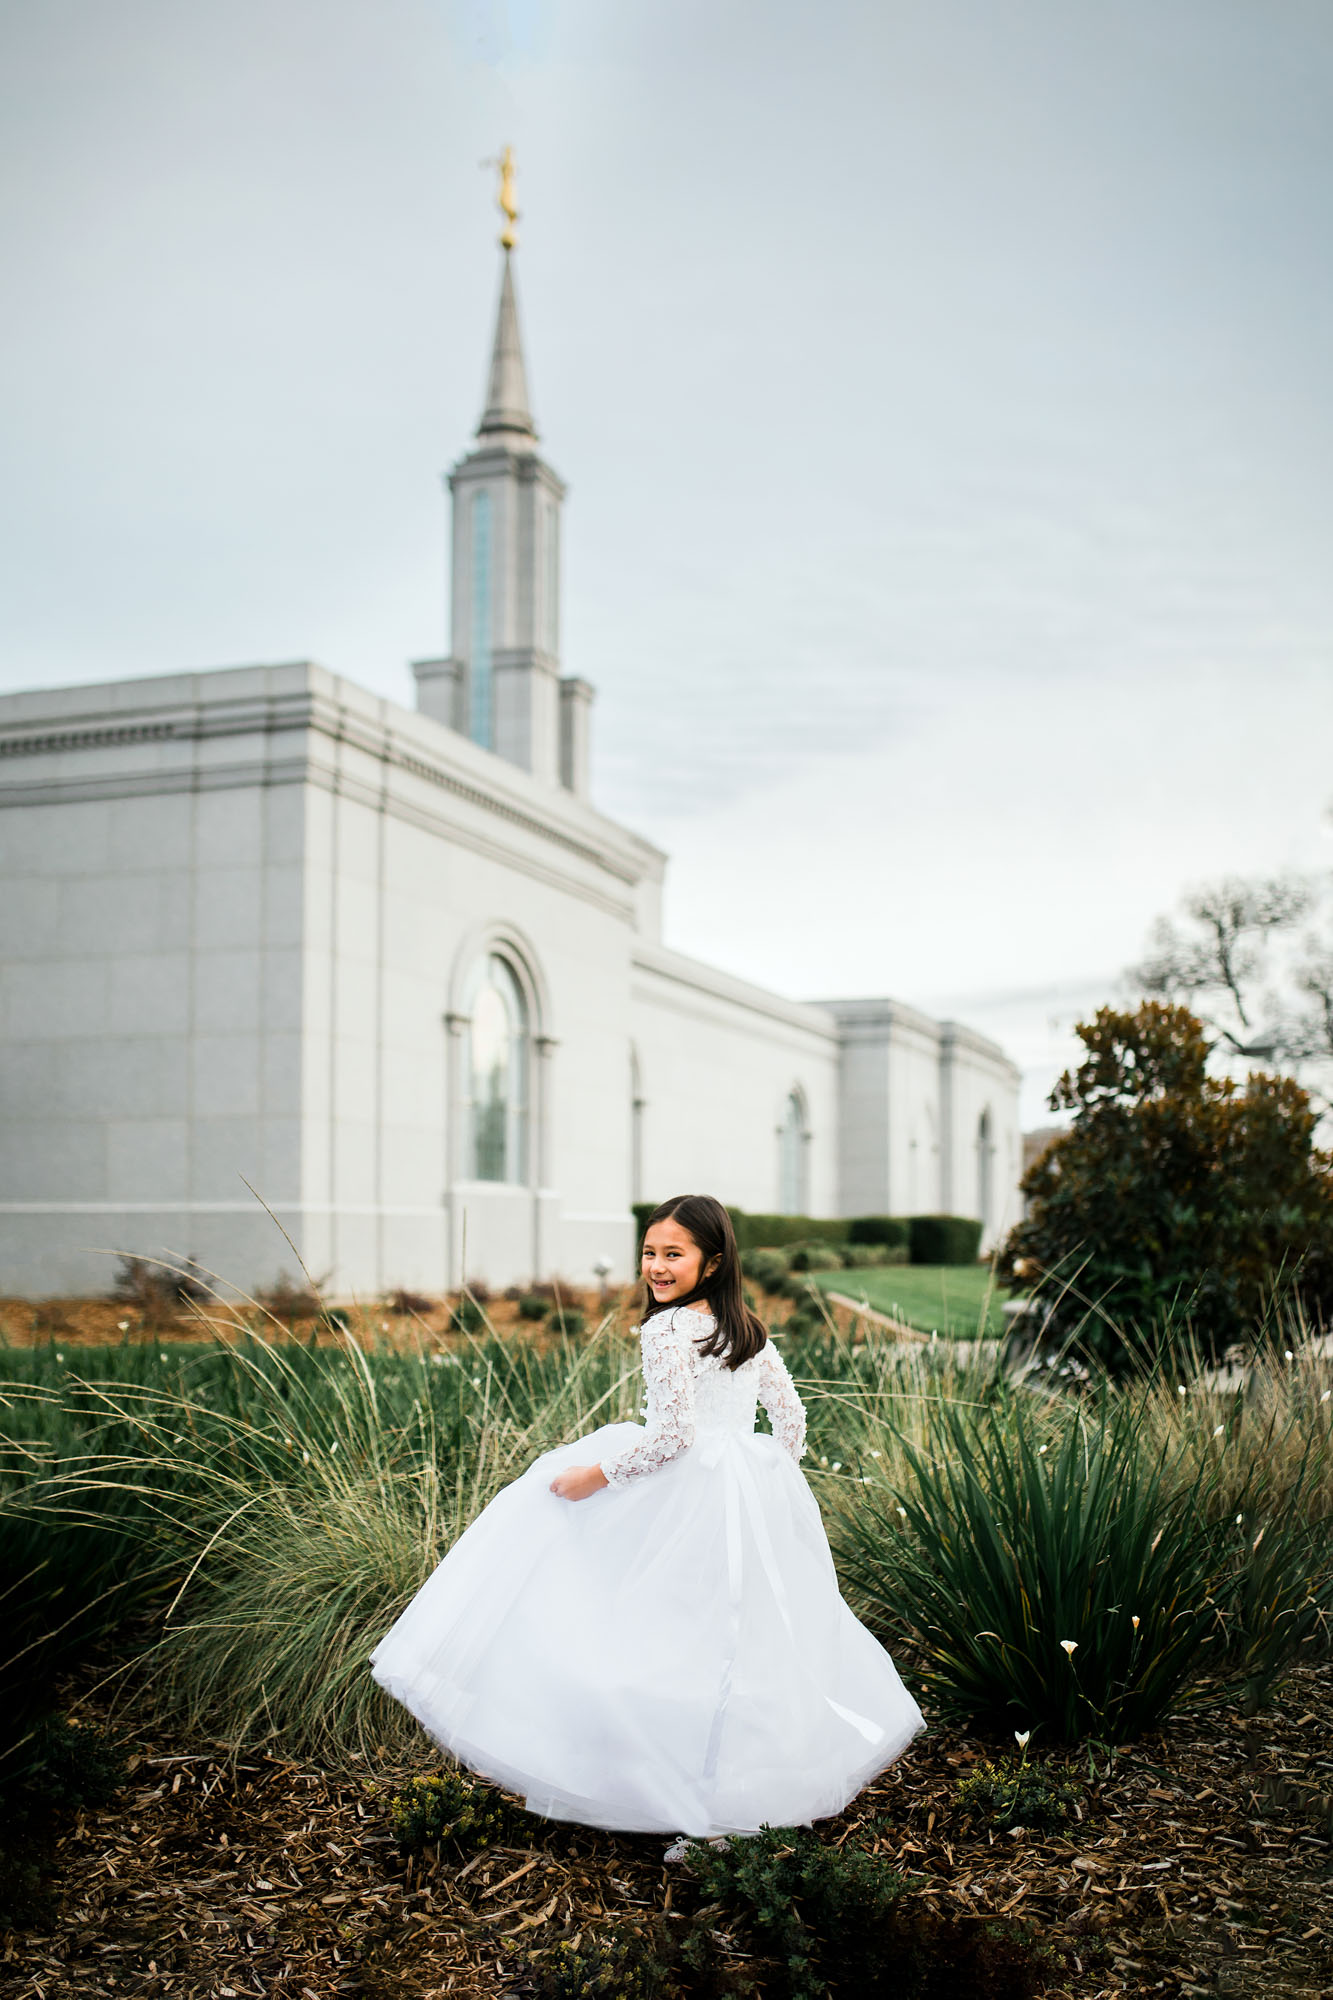 An 8-year-old girl gets pictures taken at a temple in Folsom, California before she gets baptized. Pictures taken by Amy Wright, a photographer based out of Roseville.